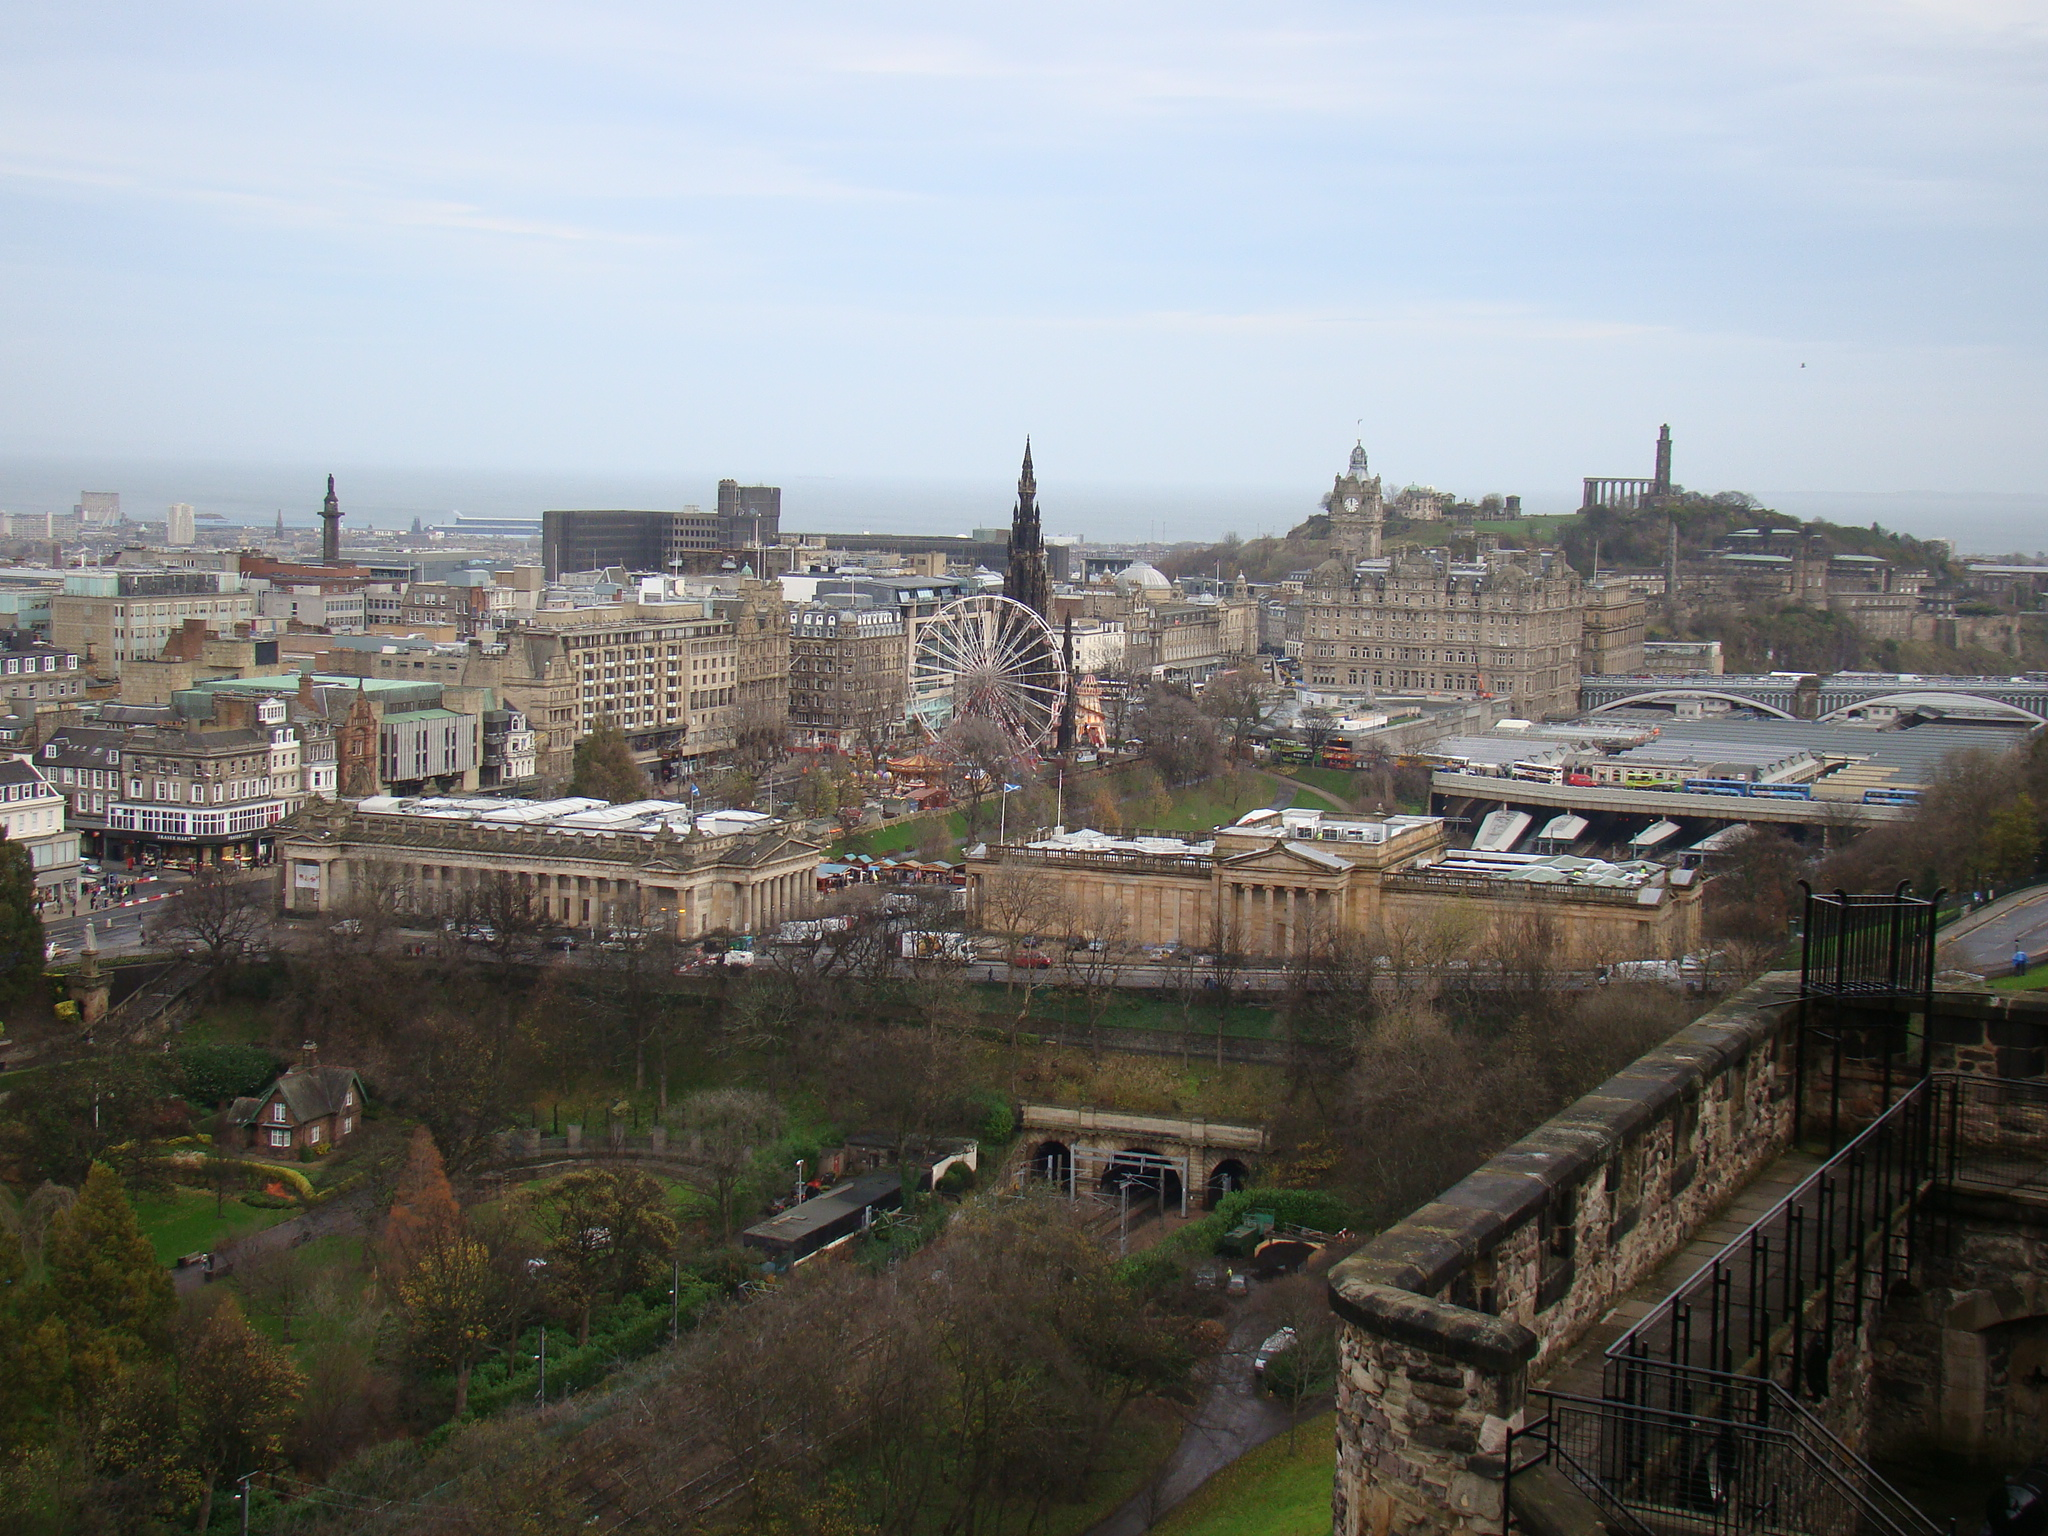 Vista do castelo de Edimburgo